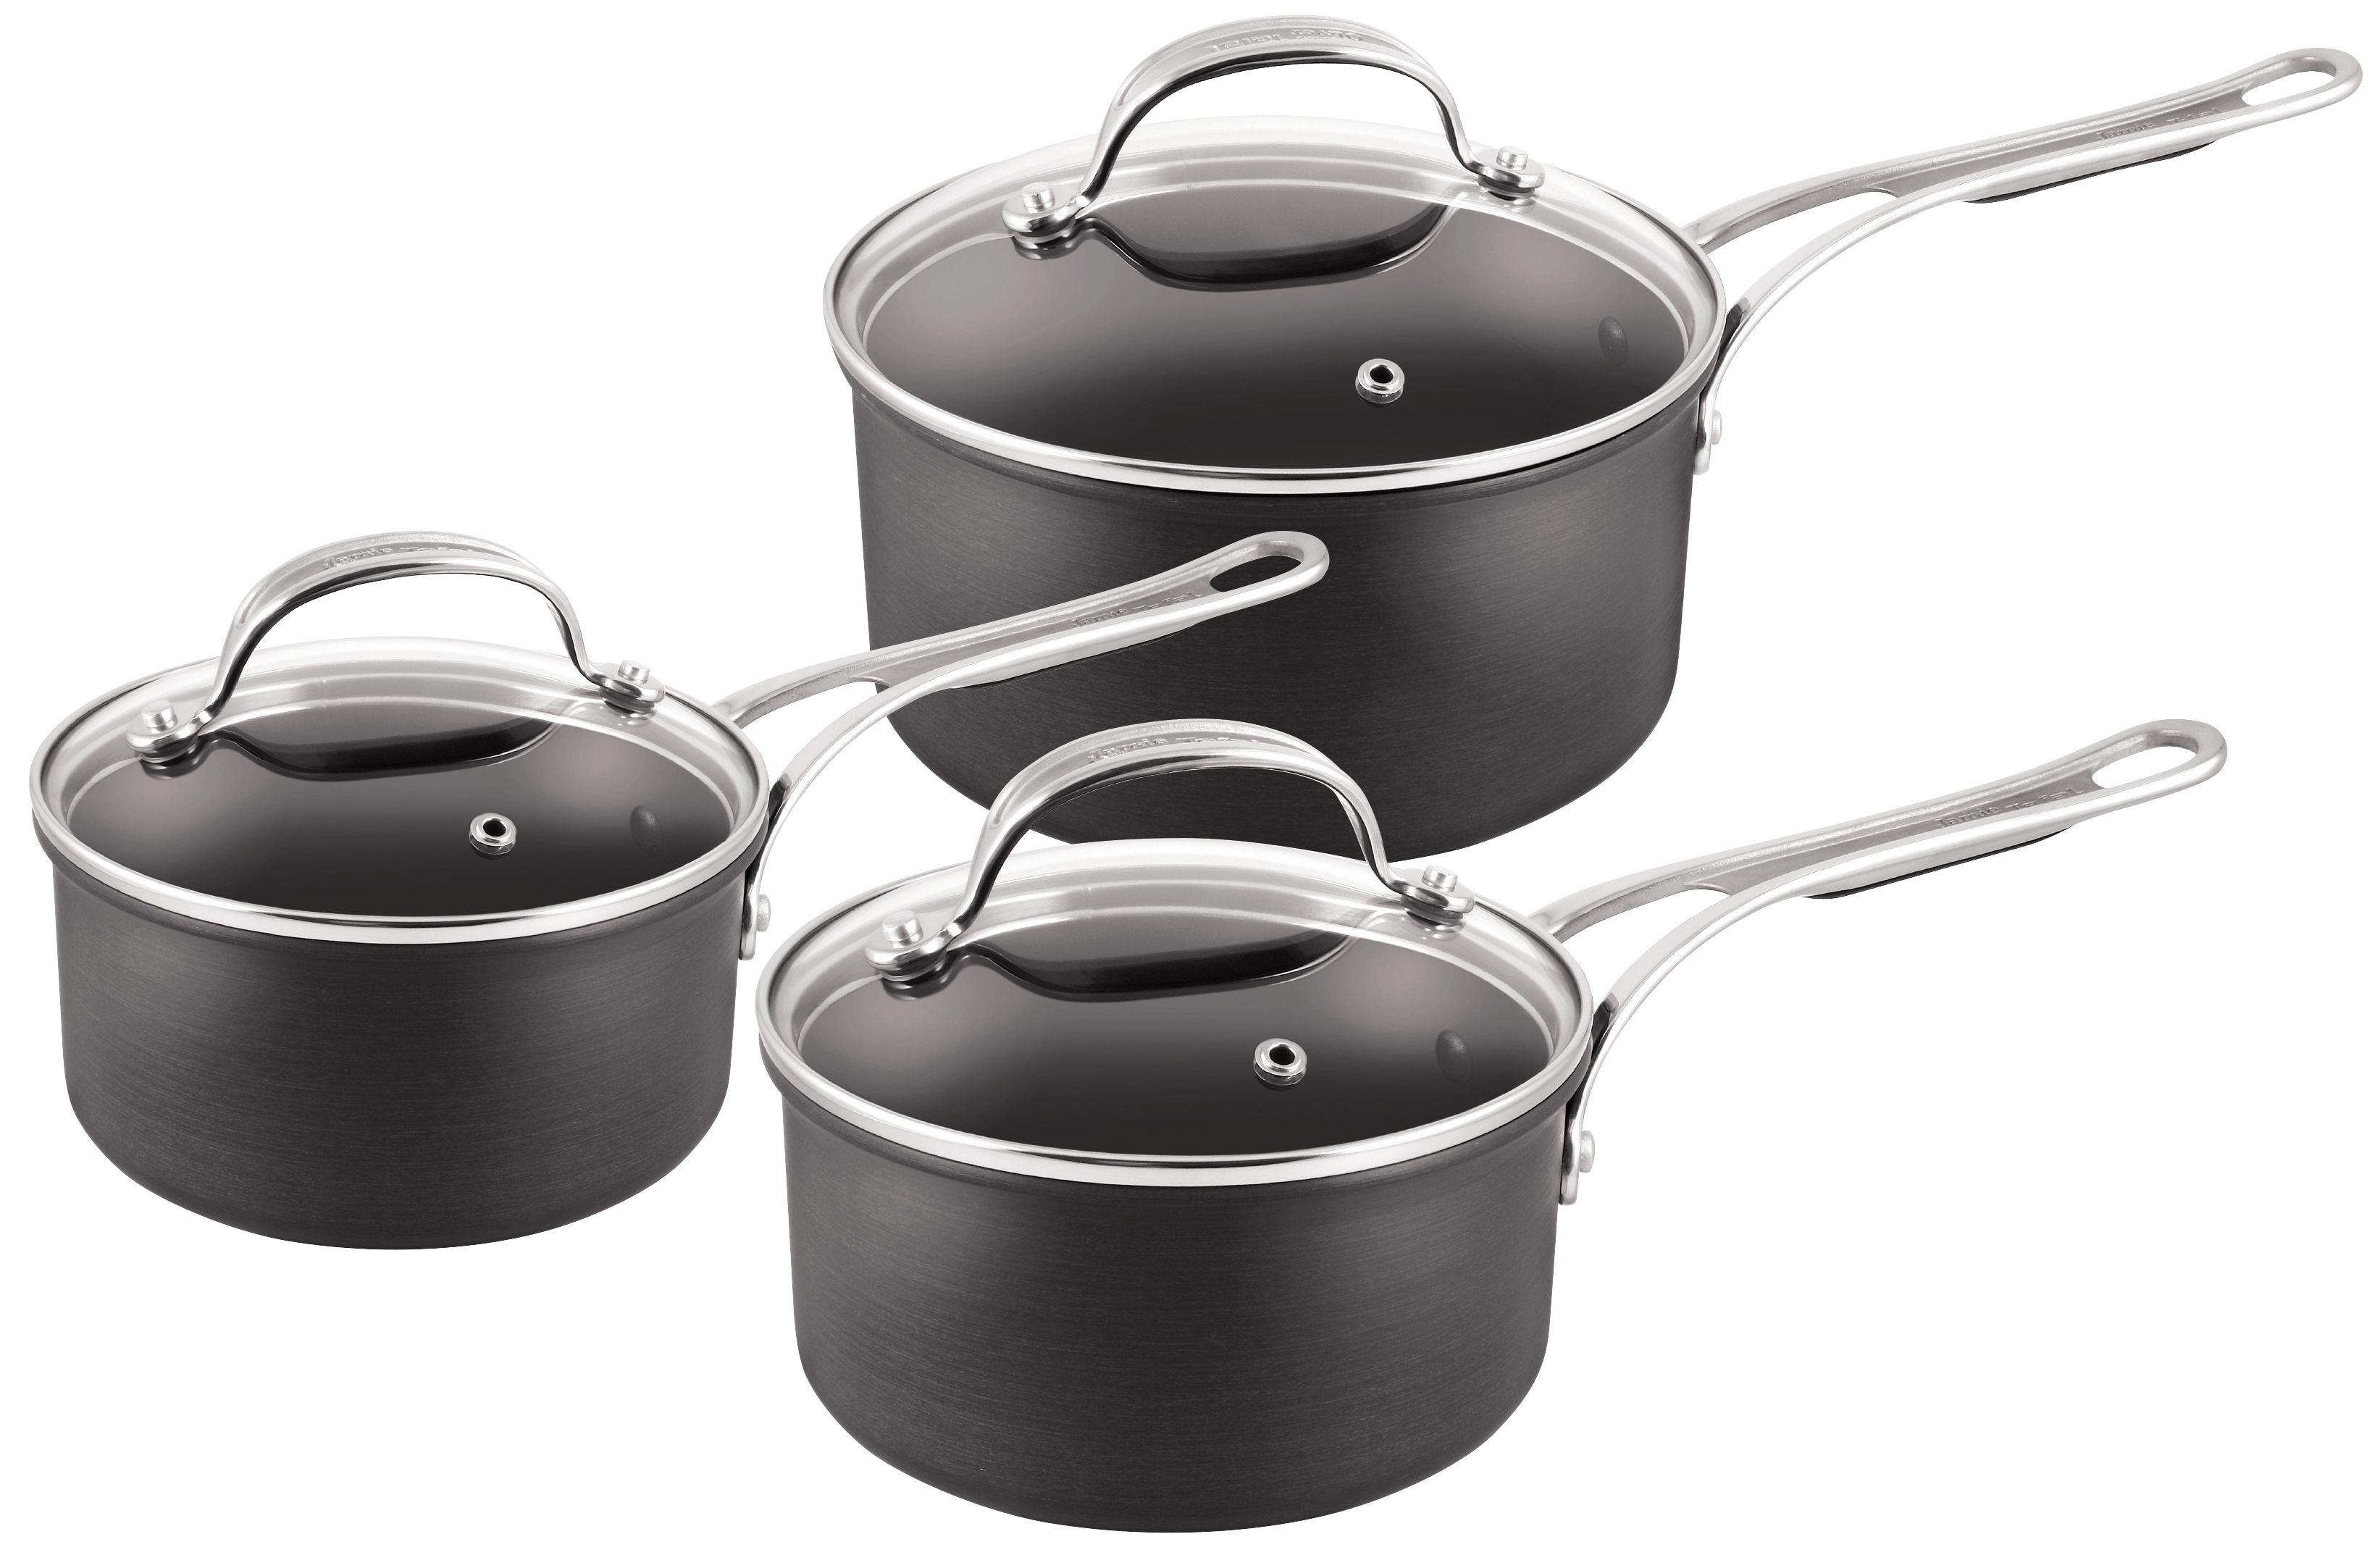 tefal 5 piece set shop for cheap cookware utensils and save online. Black Bedroom Furniture Sets. Home Design Ideas